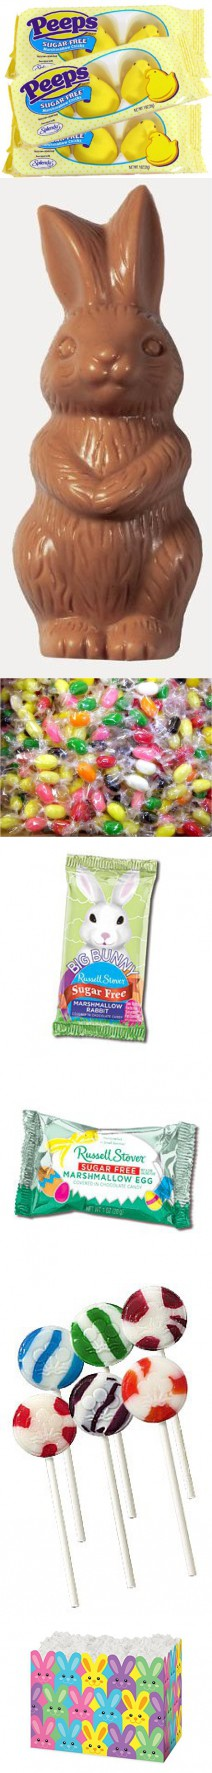 Sugar free hippity hop easter bunny gift box by diabetic candy sugar free hippity hop easter bunny gift box by diabetic candy filled with peeps chocolate negle Gallery